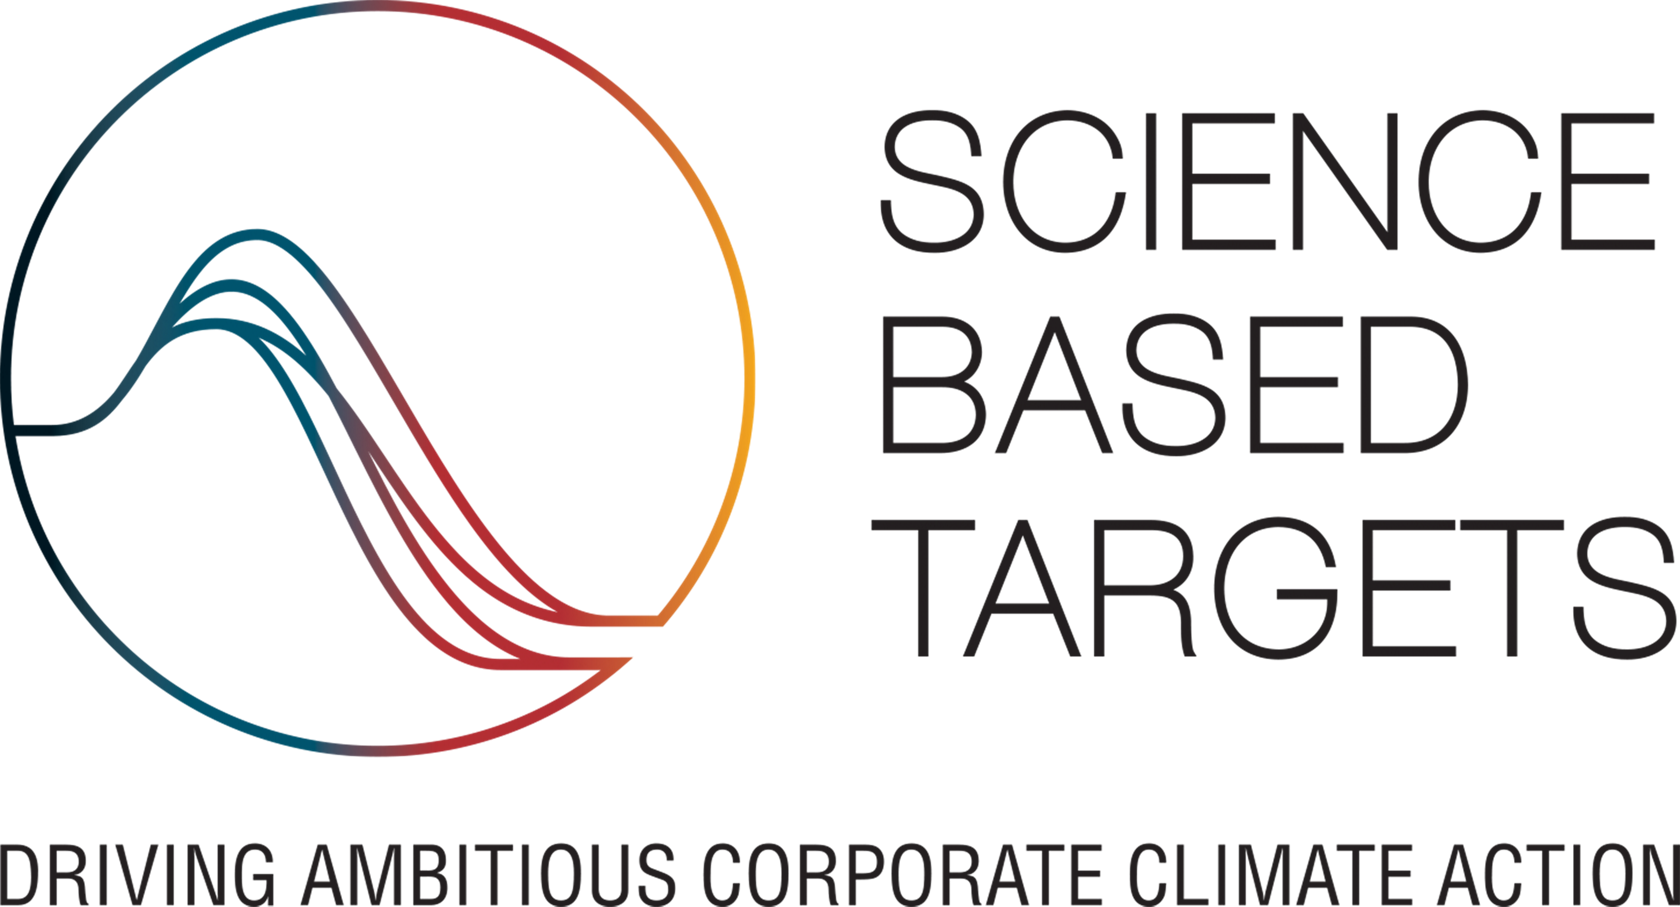 Kao Kaos Ghg Reduction Target Approved By Science Based